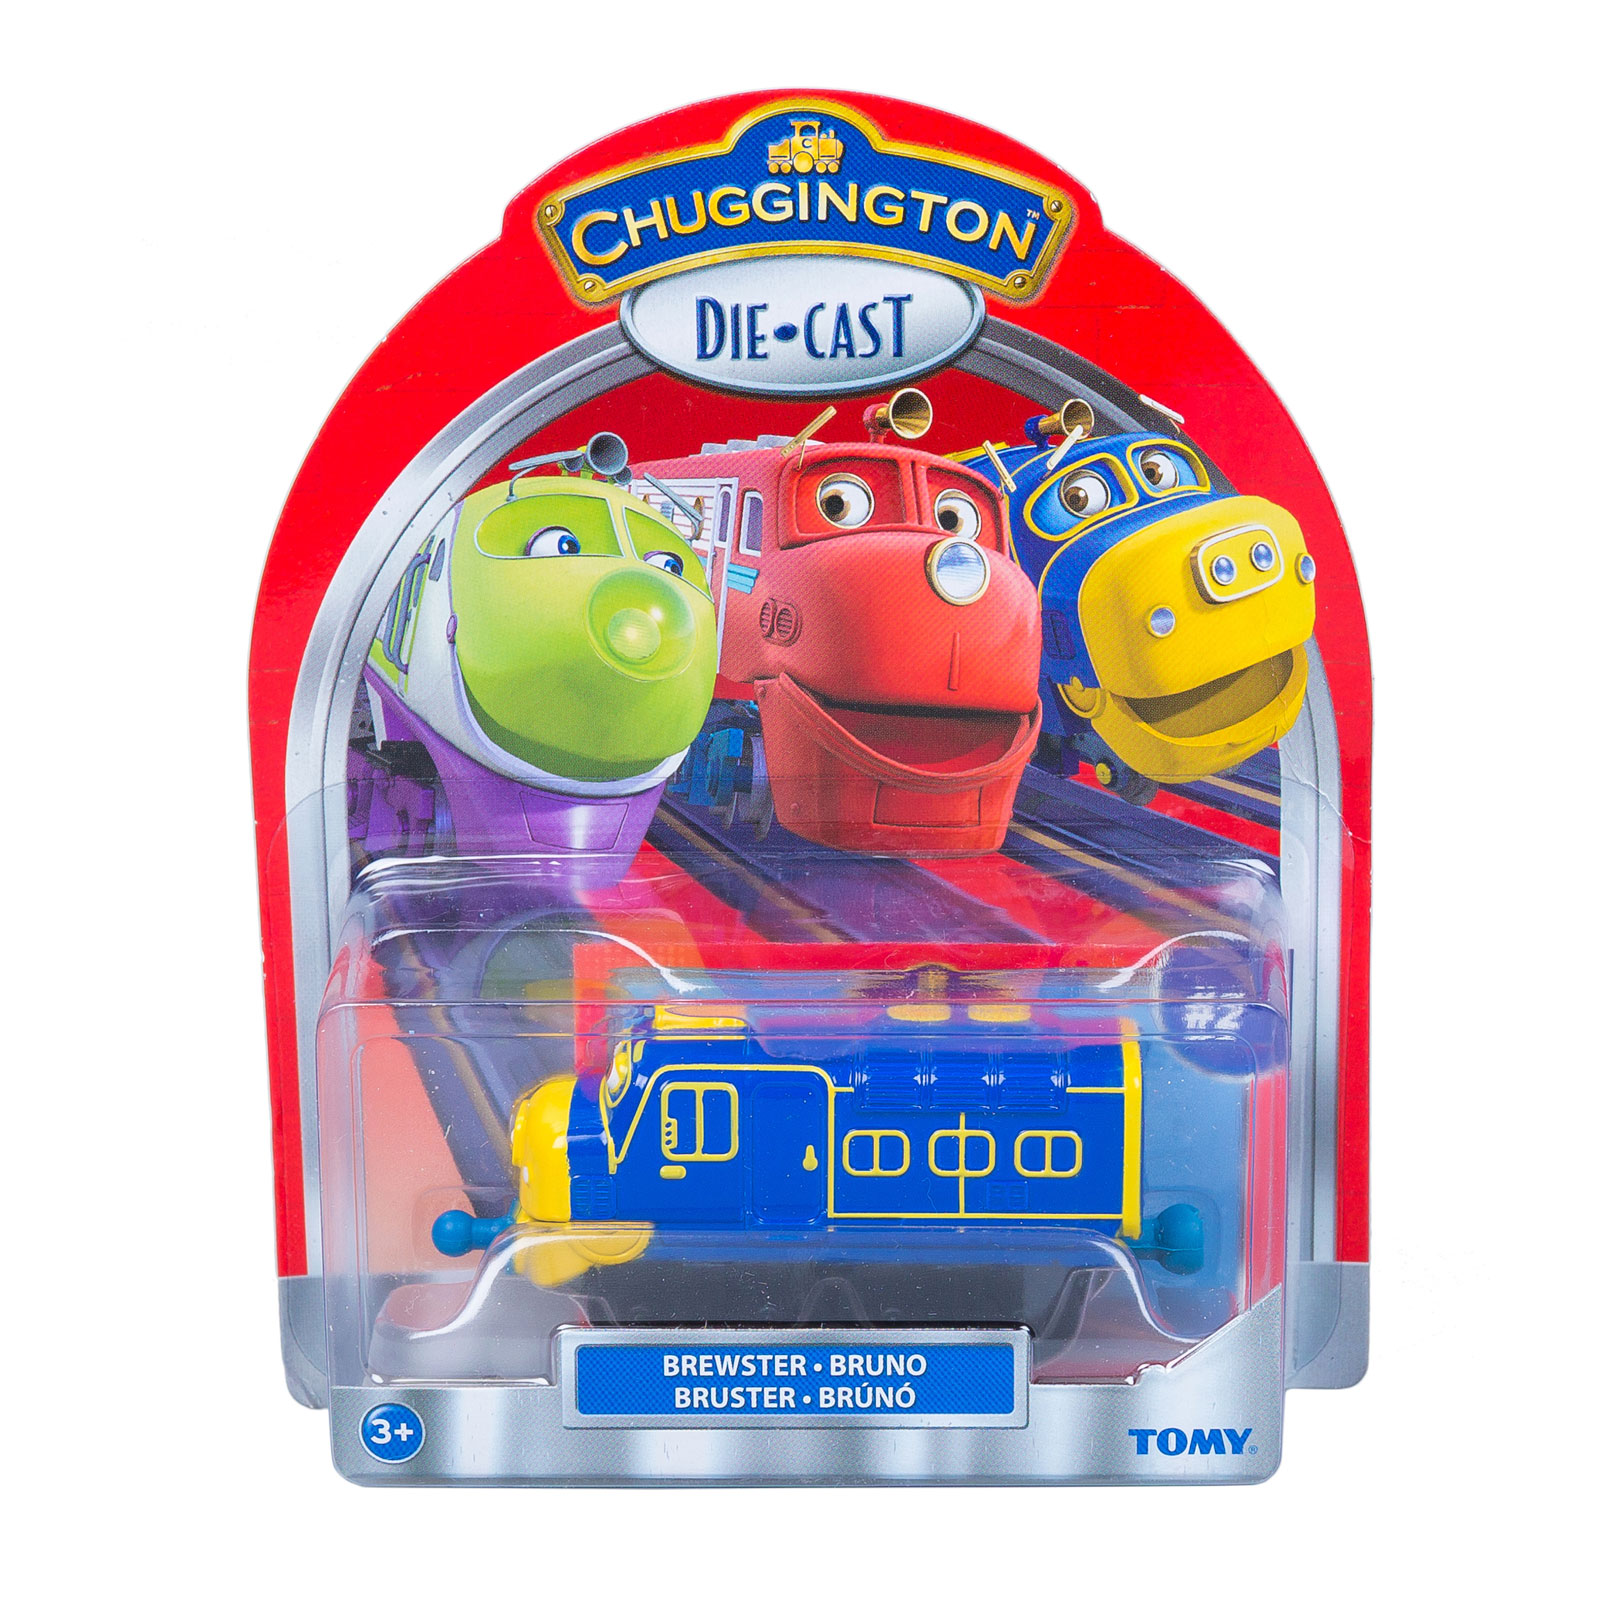 Паровозик Chuggington Брюстер с 3 лет.<br>